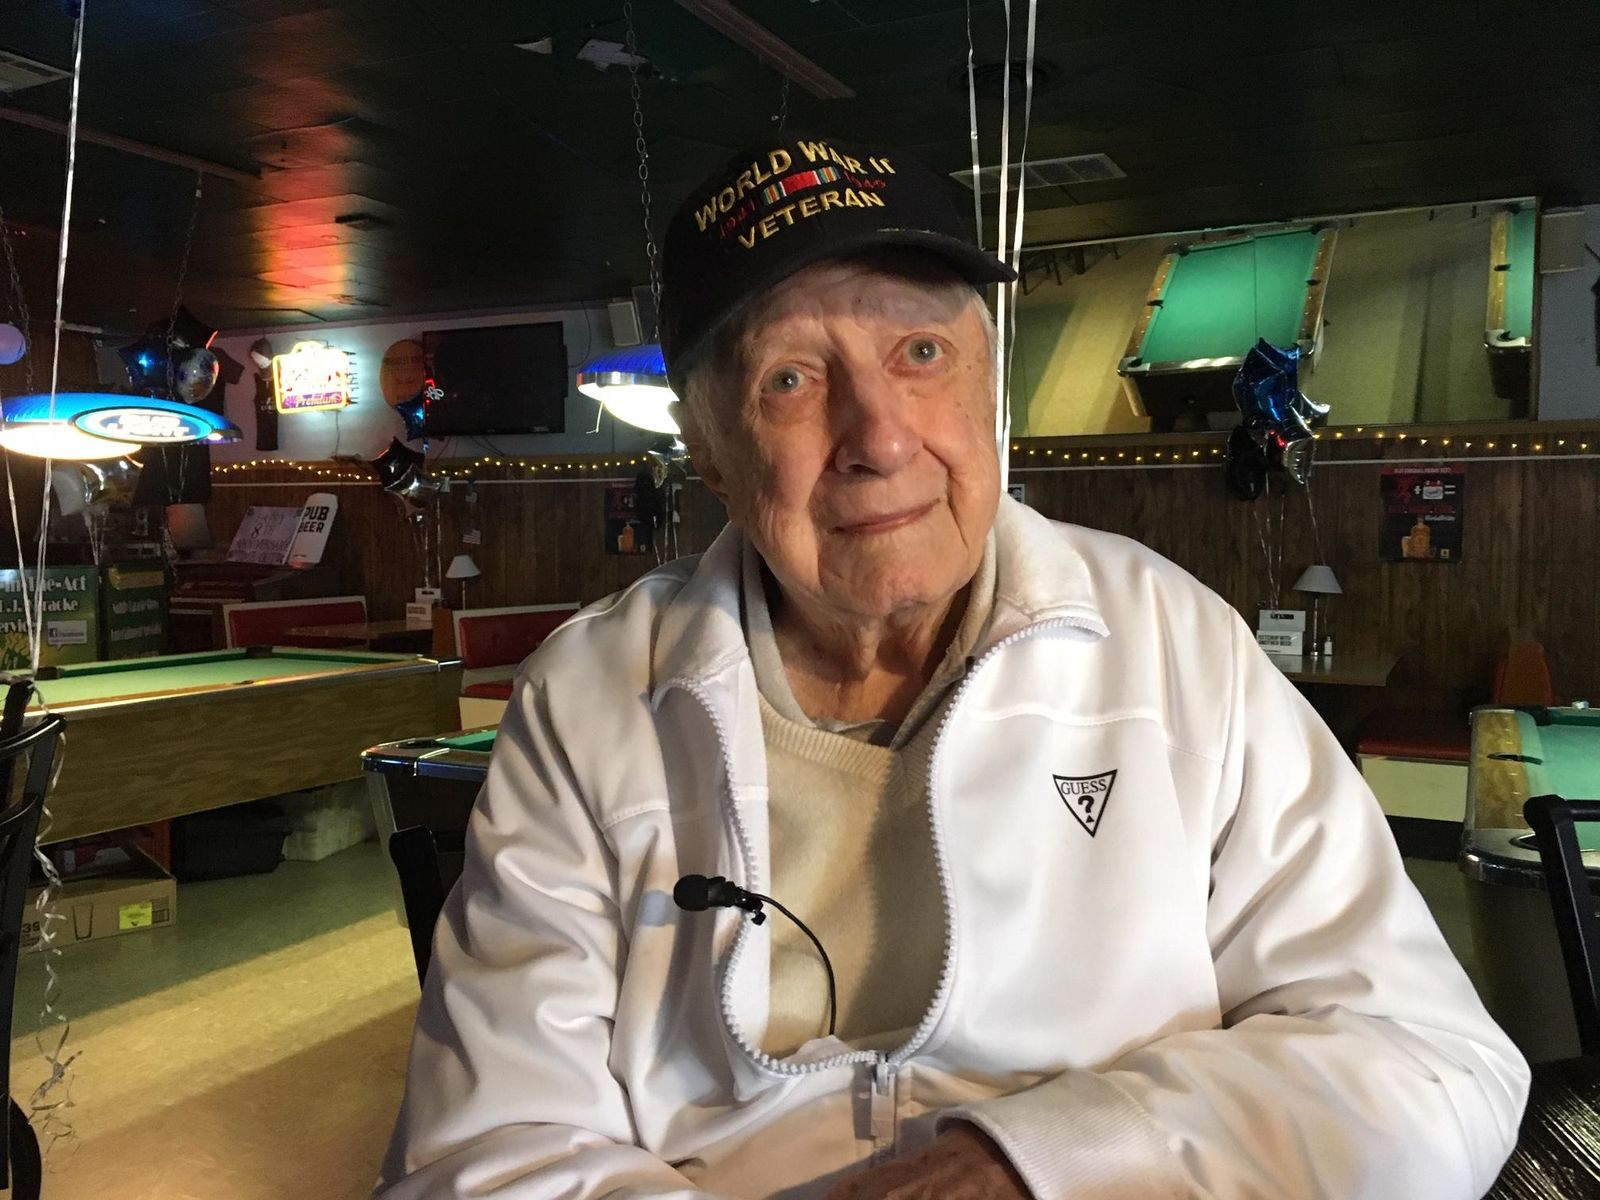 Earl Foley, owner of Time Out Tavern in Springfield, celebrates his 100th birthday on Oct. 11, 2019. (Tom Adams/SBG)